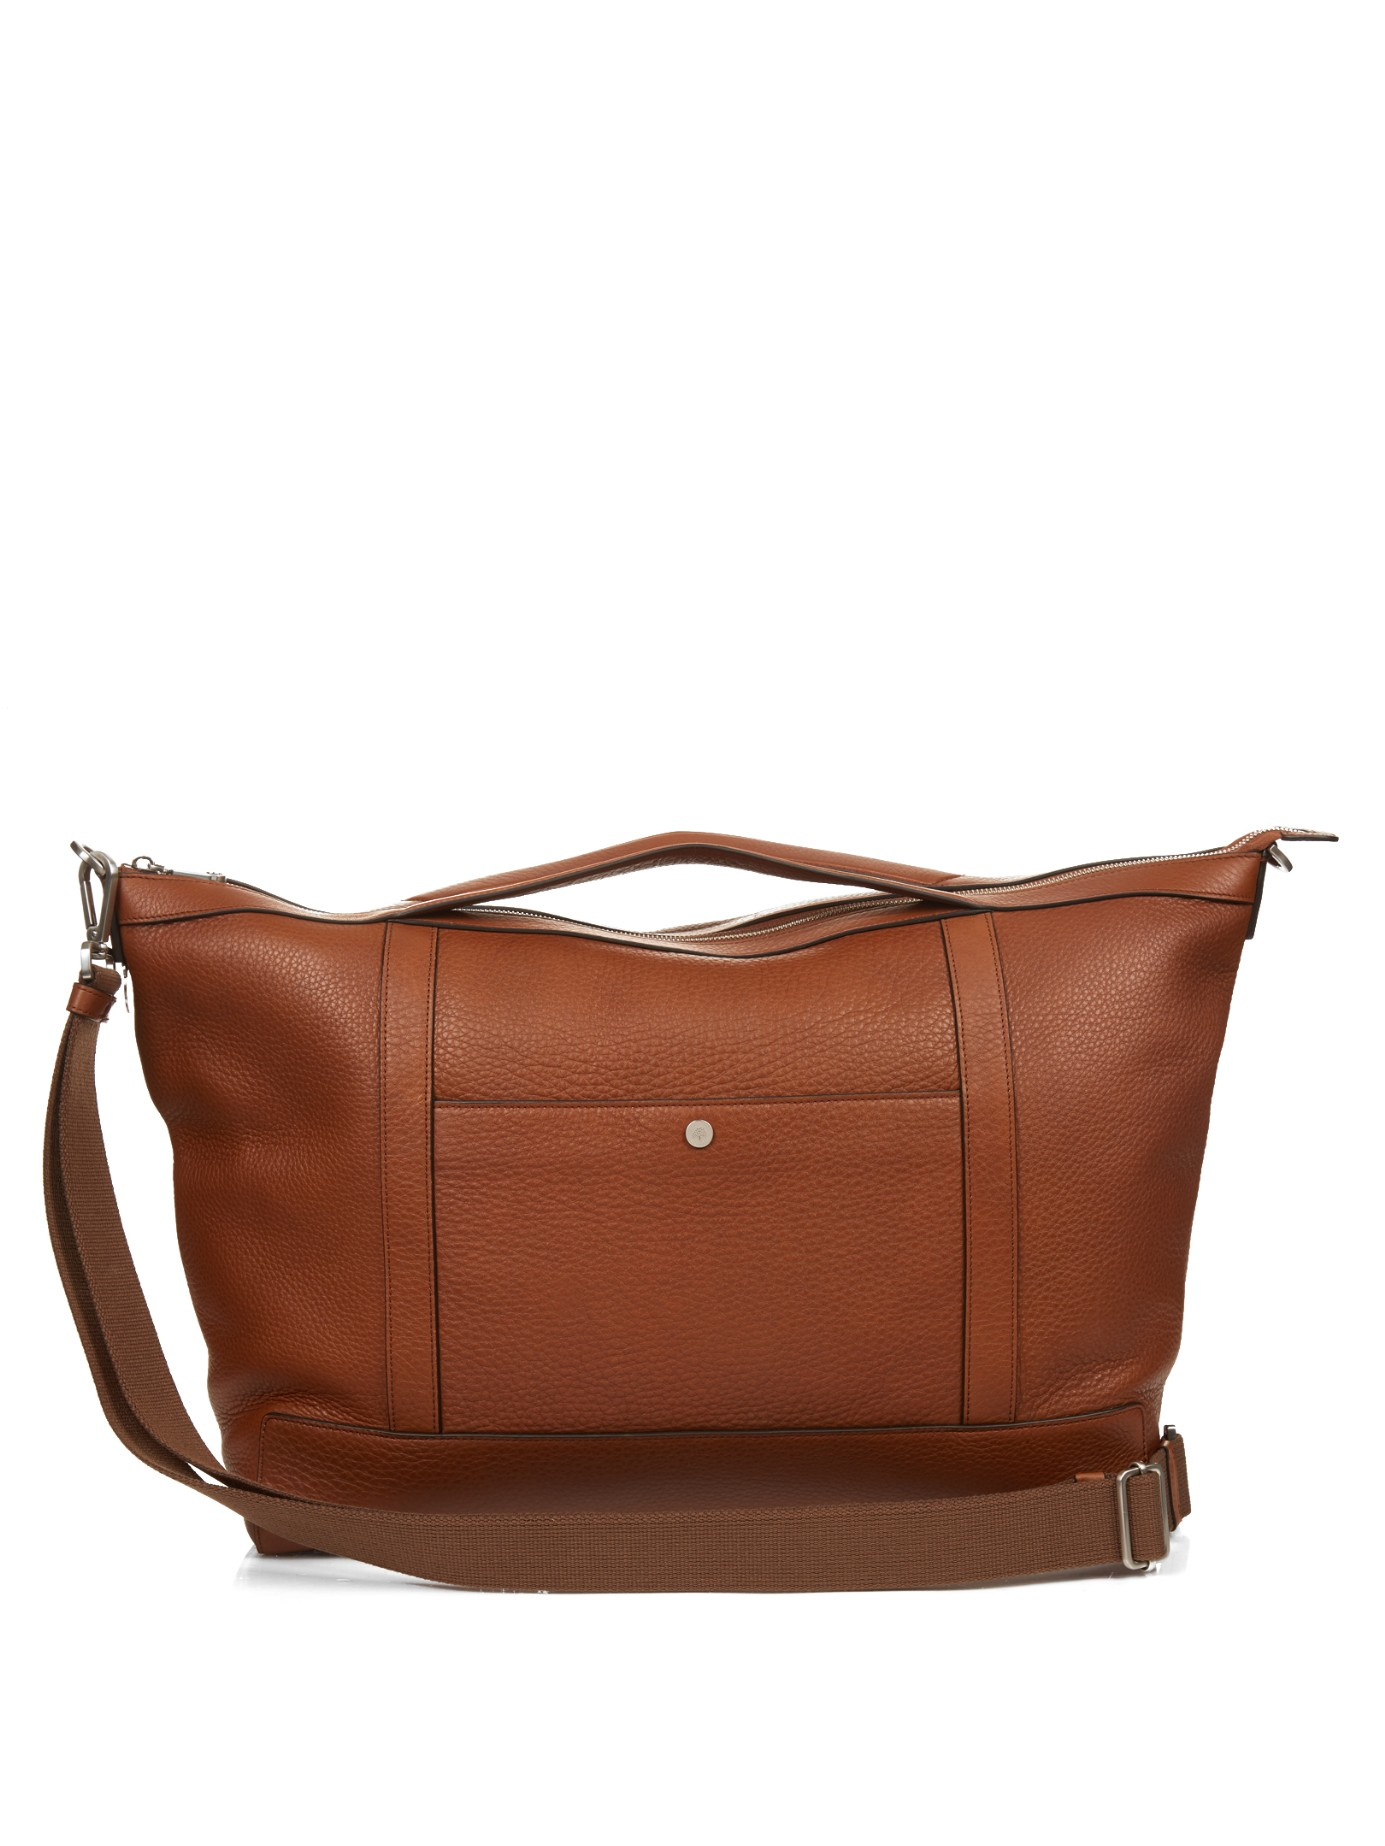 61703274436d discount code for mulberry elgin bag 484ea 095e3  france mulberry multi  tasker grained leather holdall in brown for men lyst 5b081 86ccc